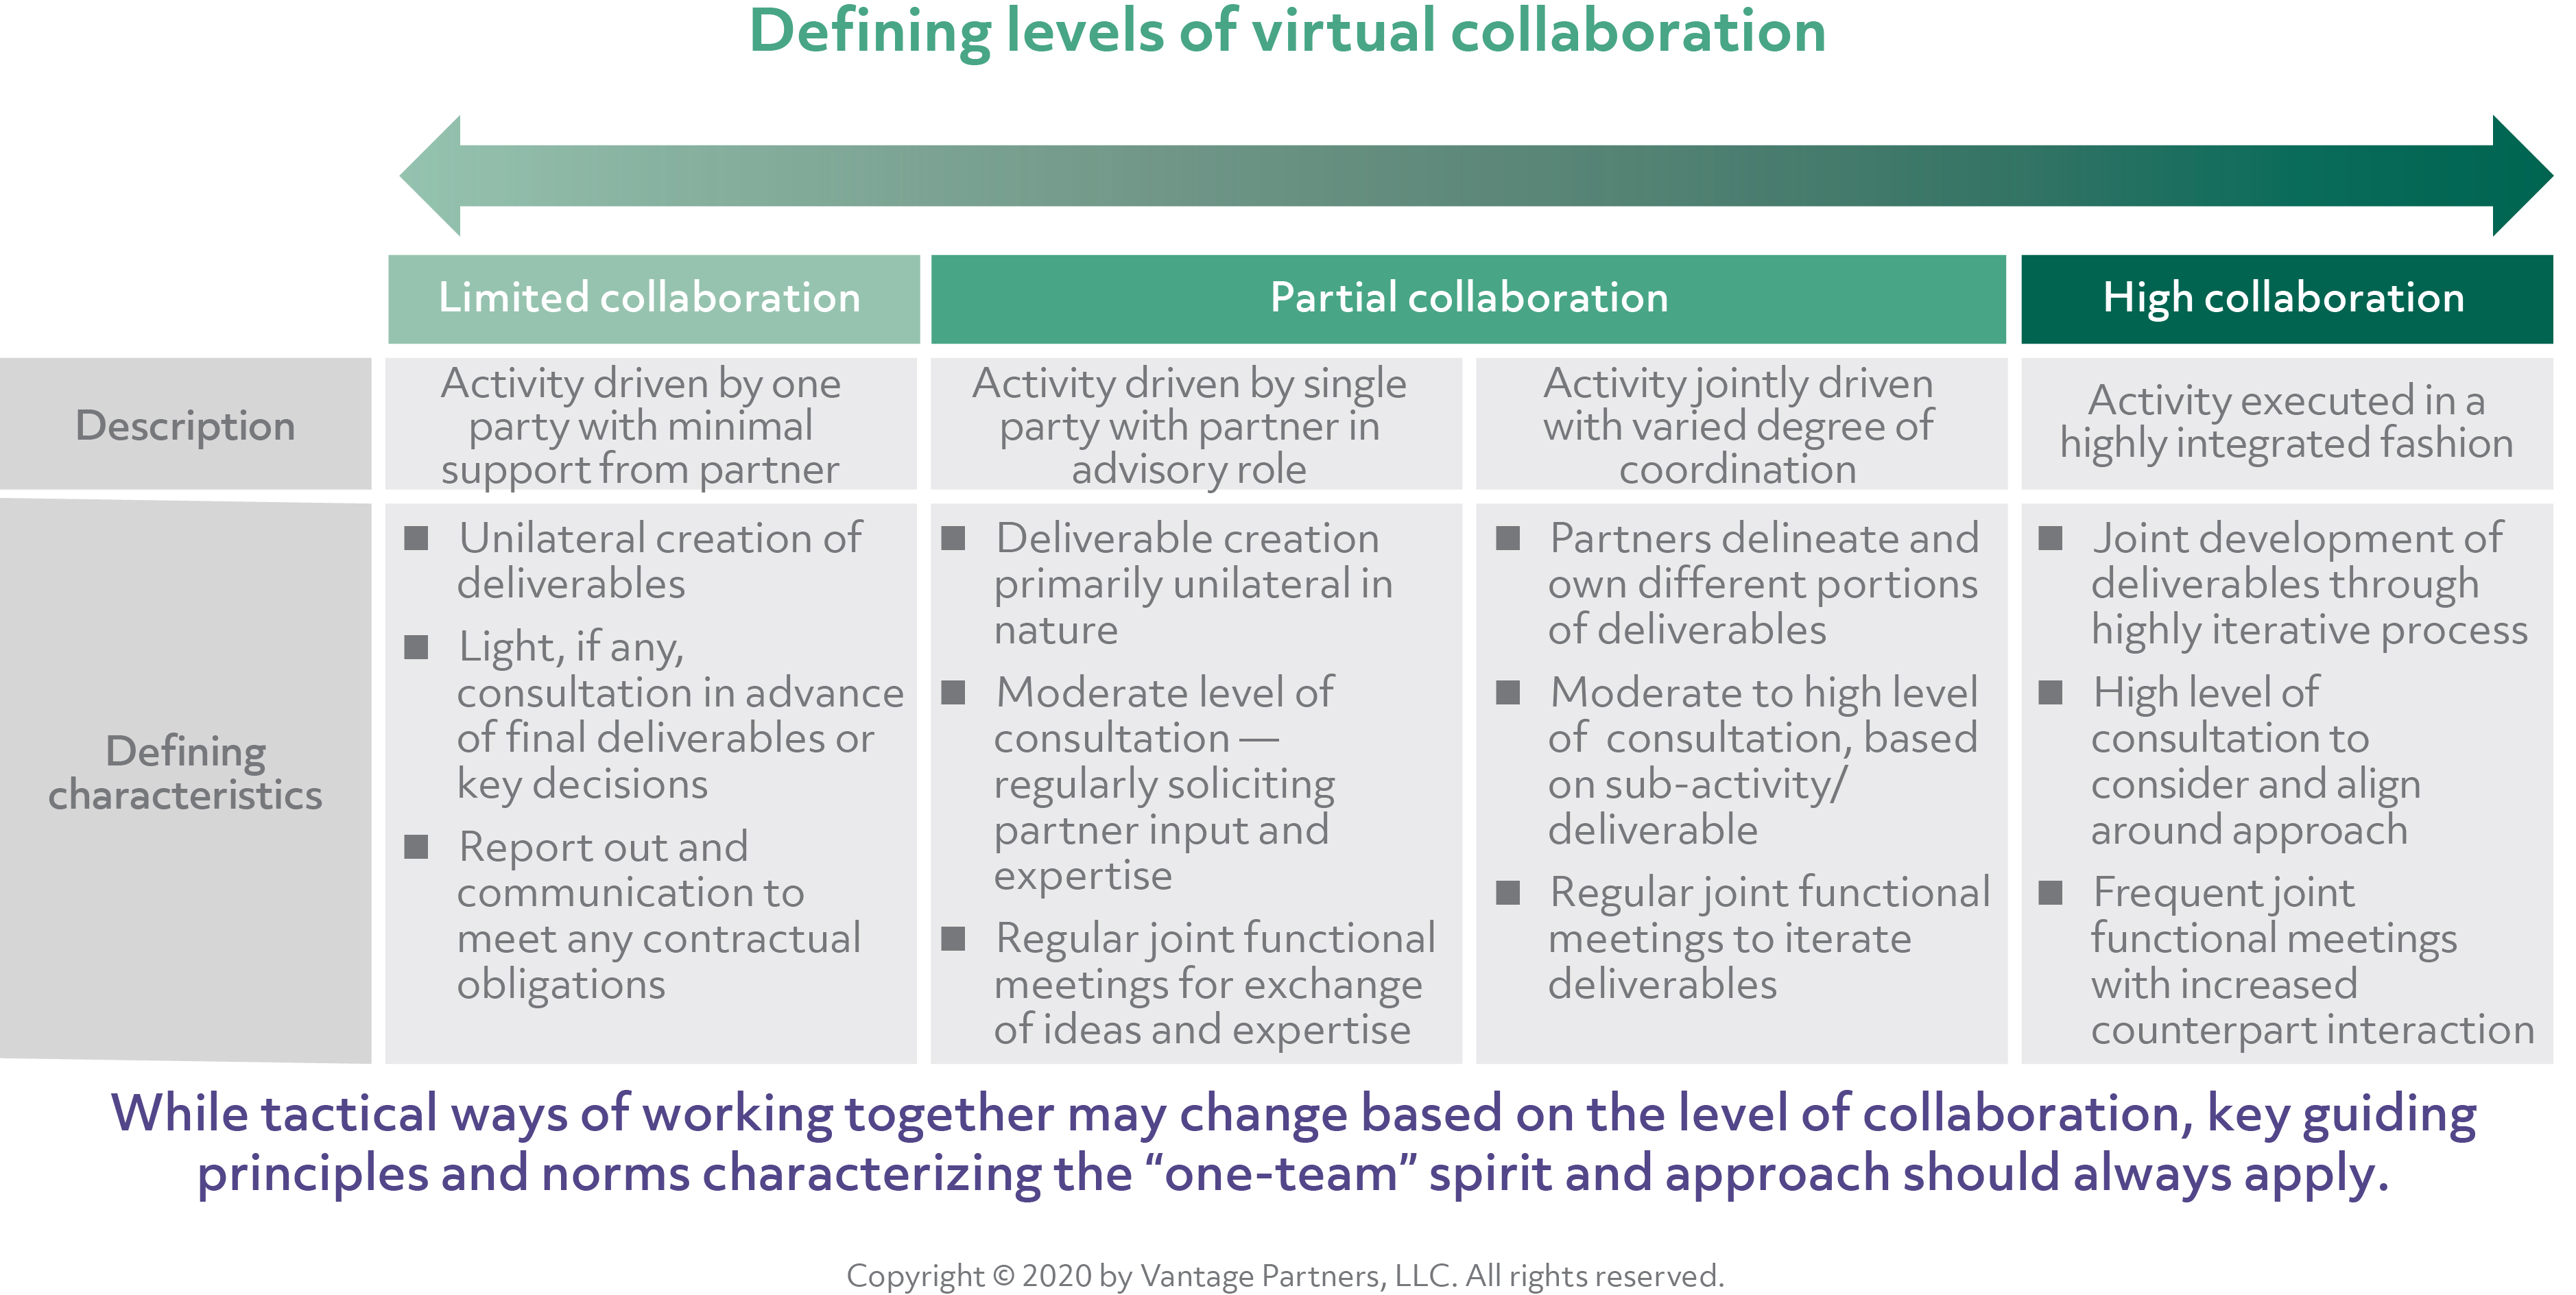 Defining levels of virtual collaboration